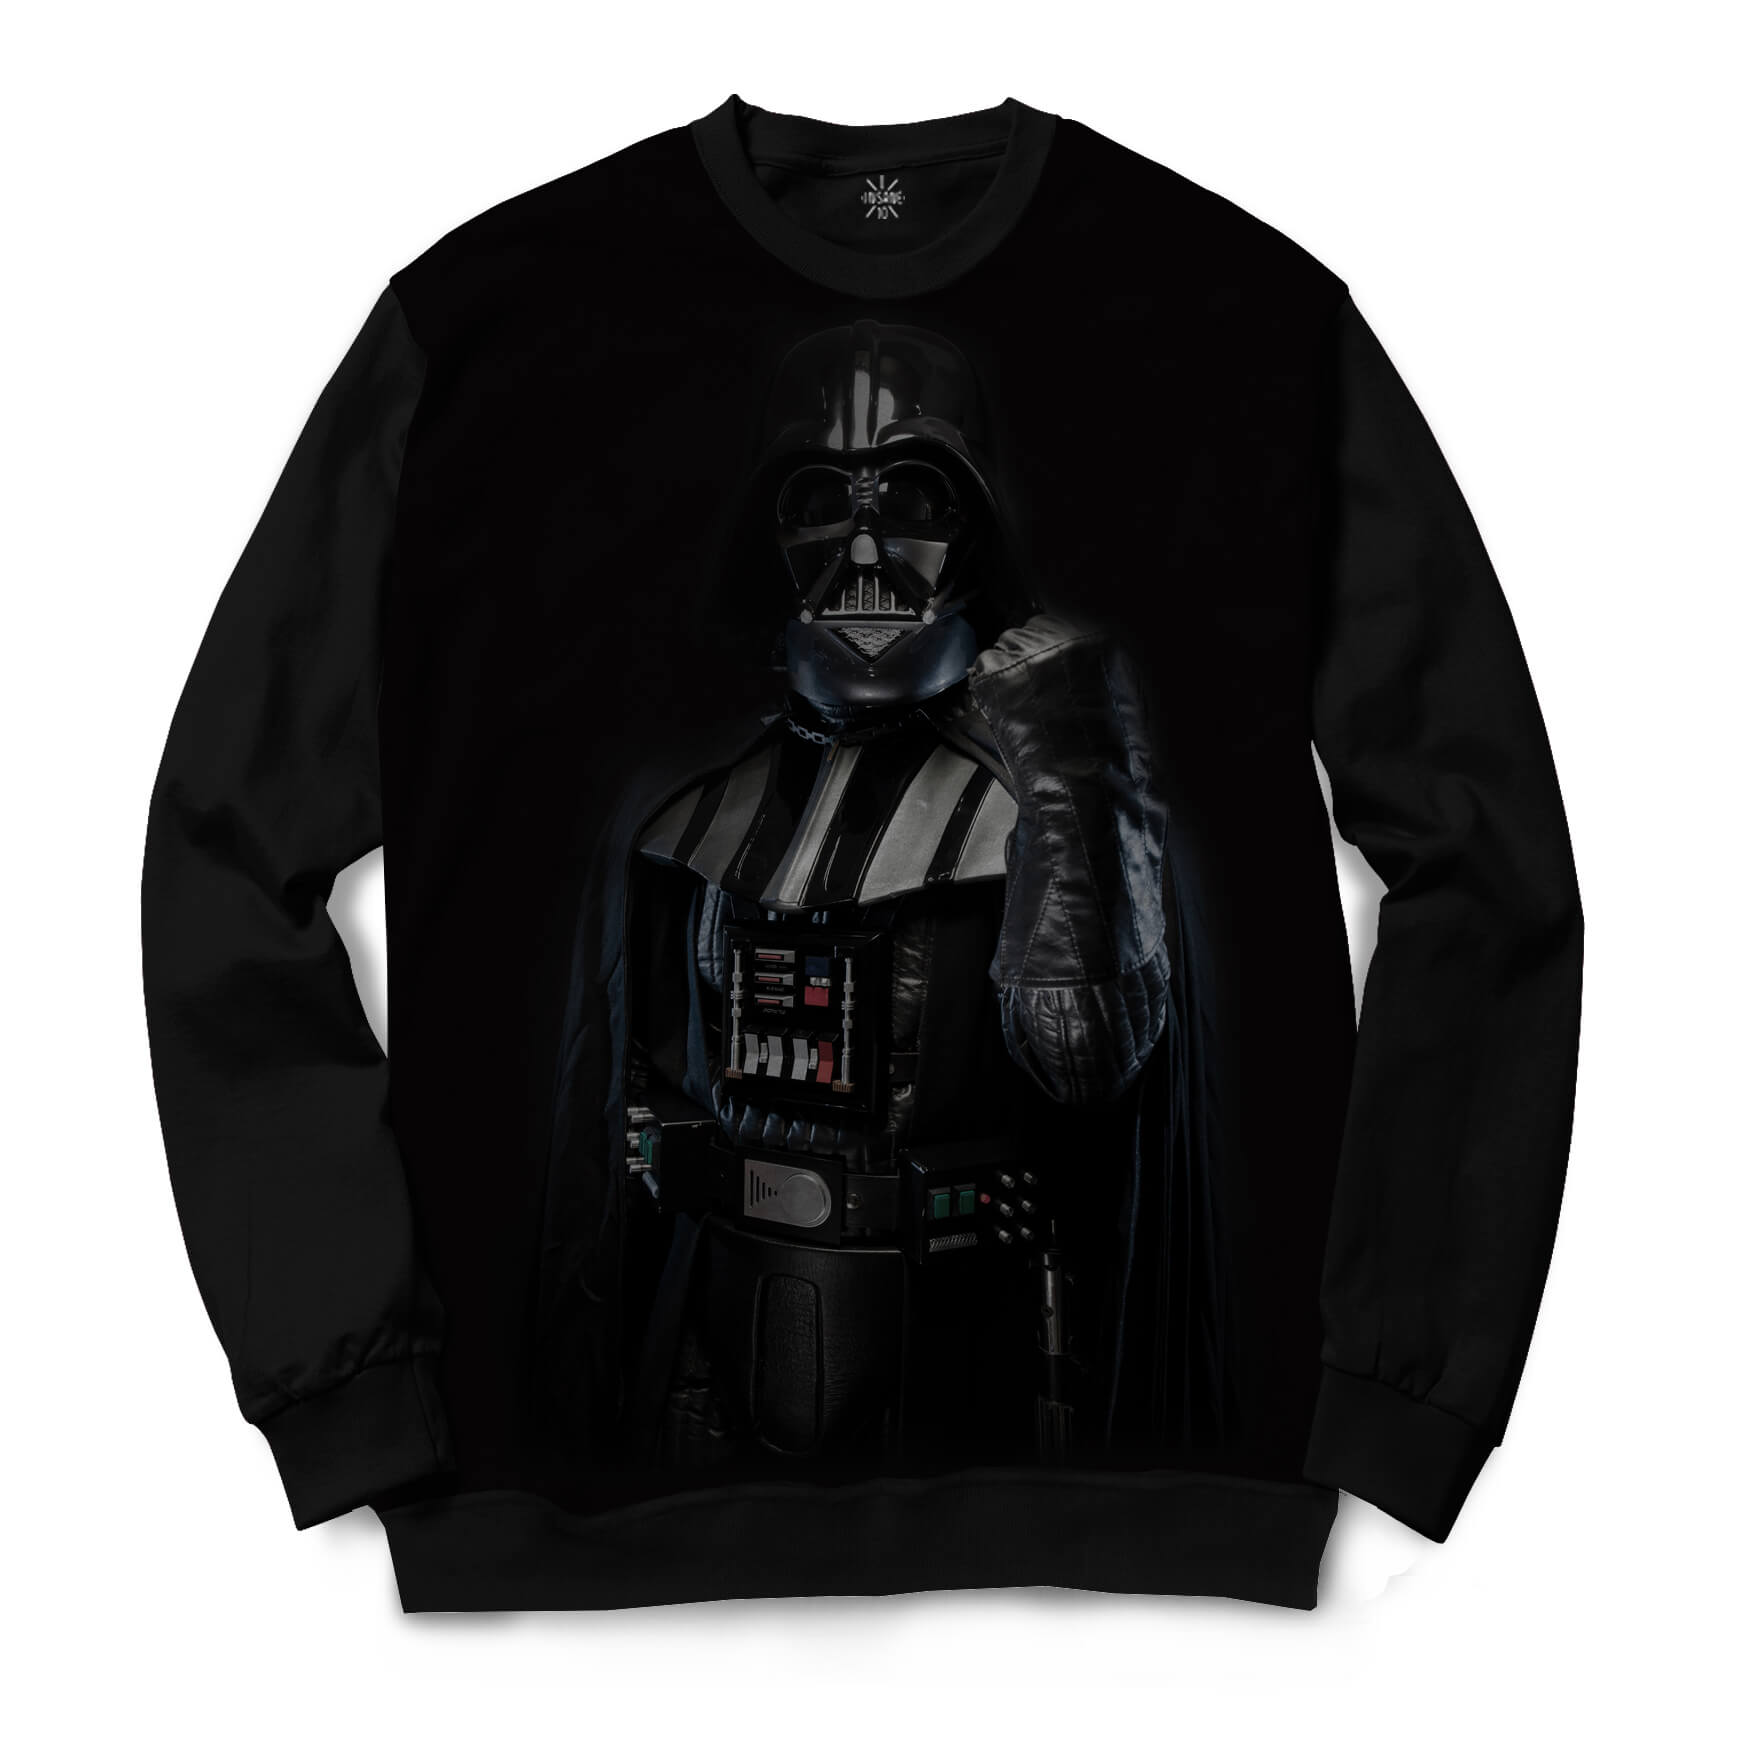 Moletom Gola Careca Insane 10 Star Wars Darth Vader Mão Levantada Full Print Preto